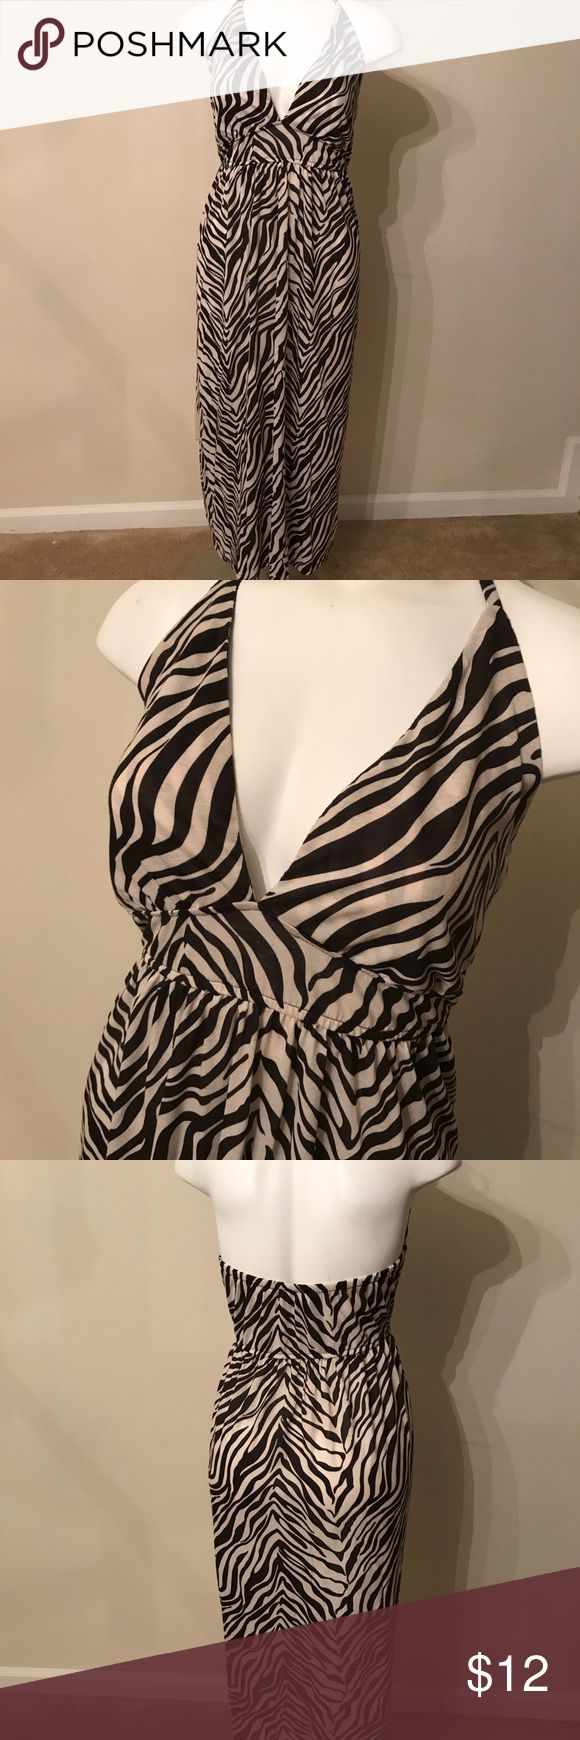 """Maxi Halter strap dress animal print plus size Low cut V-neck halter that ties behind neck, tan and cream animal print stripes, cotton material, back is open, good for the summer, good for the beach, it's long-I'm 5'8"""" and it goes to the floor. Faded Glory Dresses Maxi"""